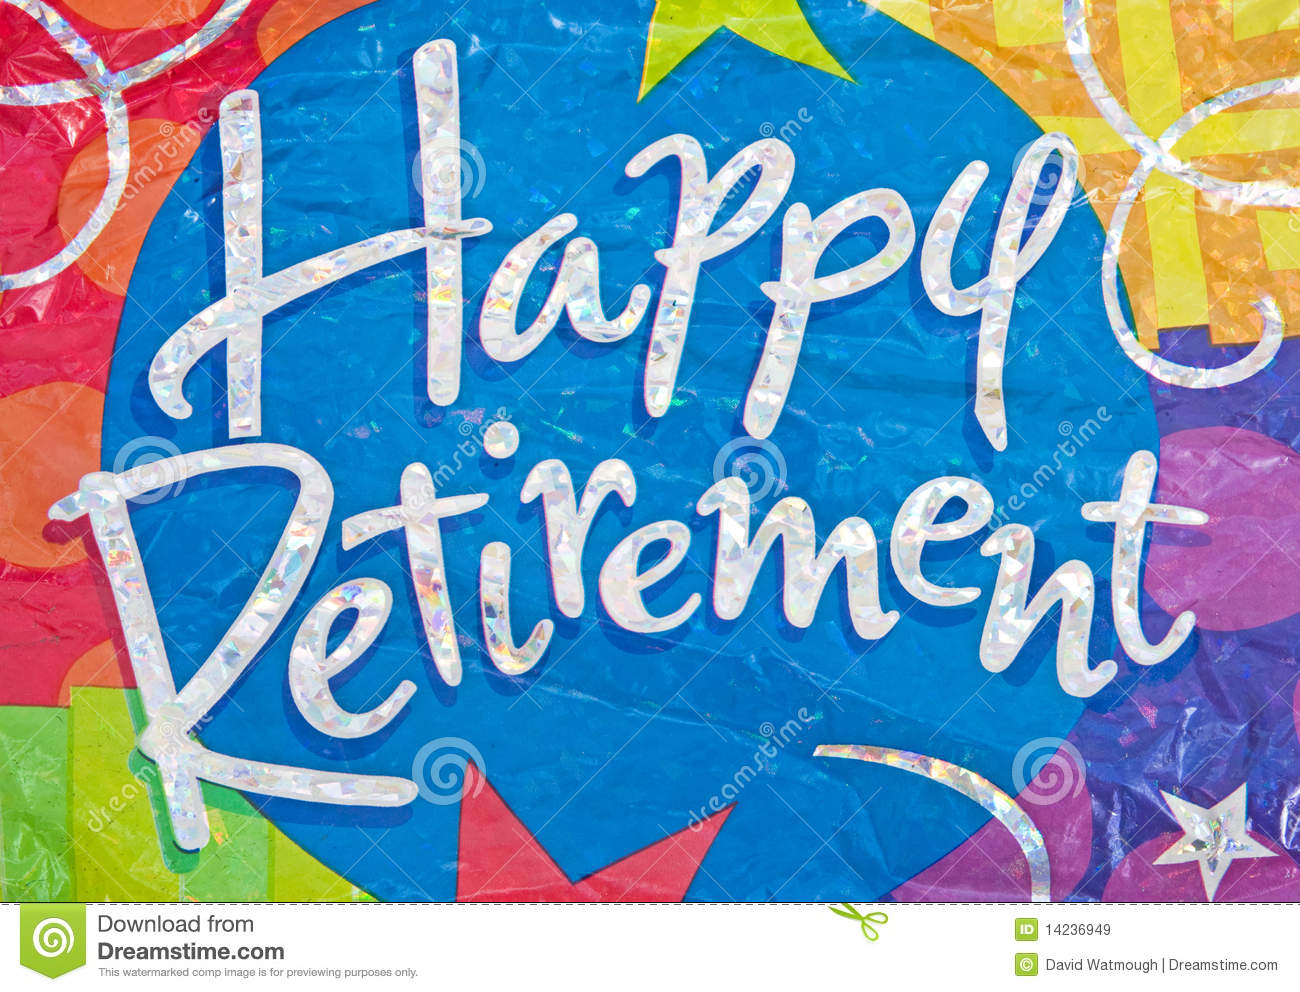 Happy retirement stock image image of wishes happiness 14236949 download happy retirement stock image image of wishes happiness 14236949 toneelgroepblik Images